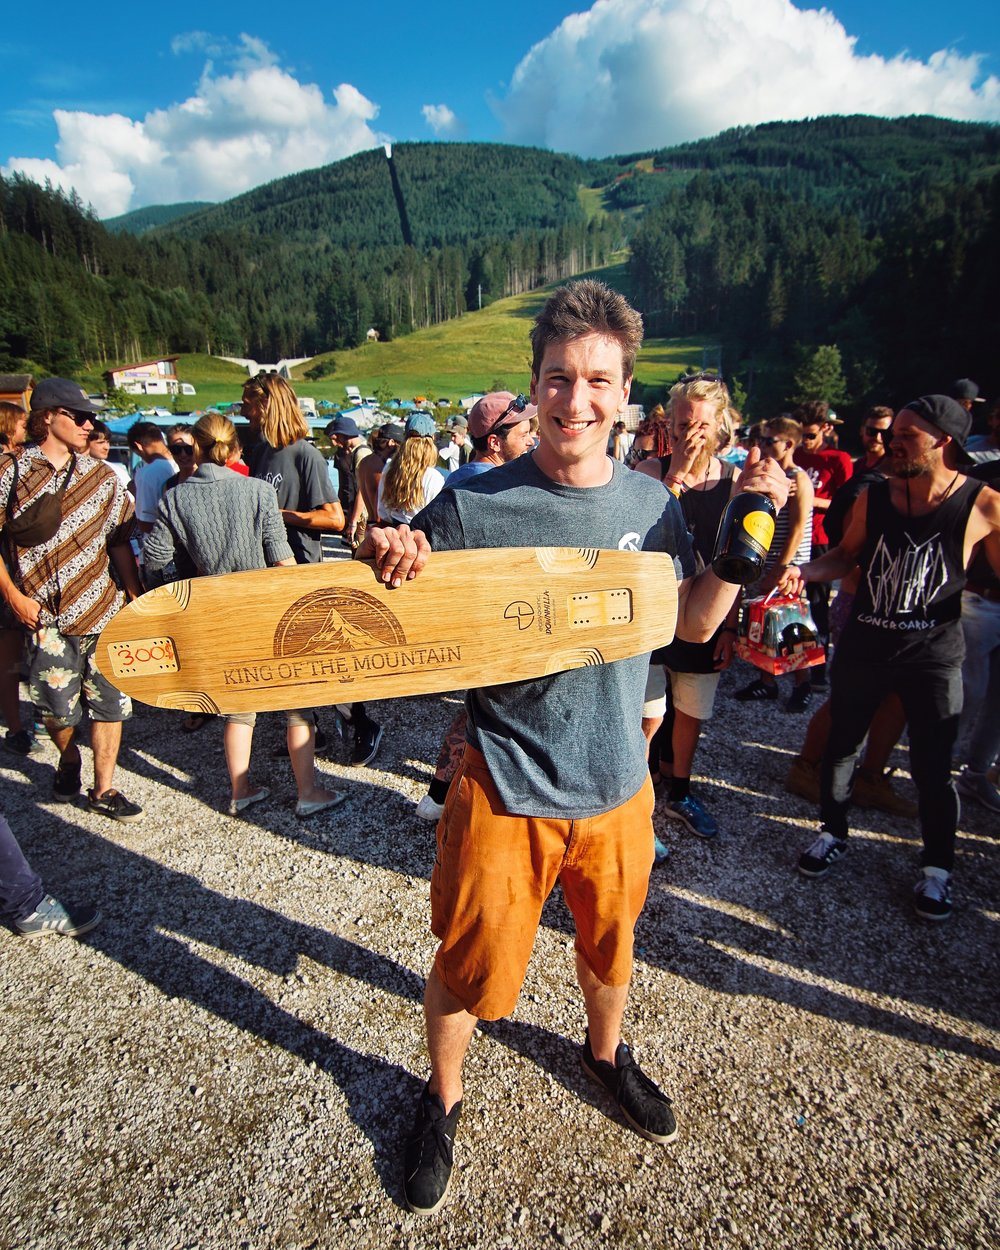 Quirin Ilmer wins the King's Gate World Cup in his homeland of Austria!